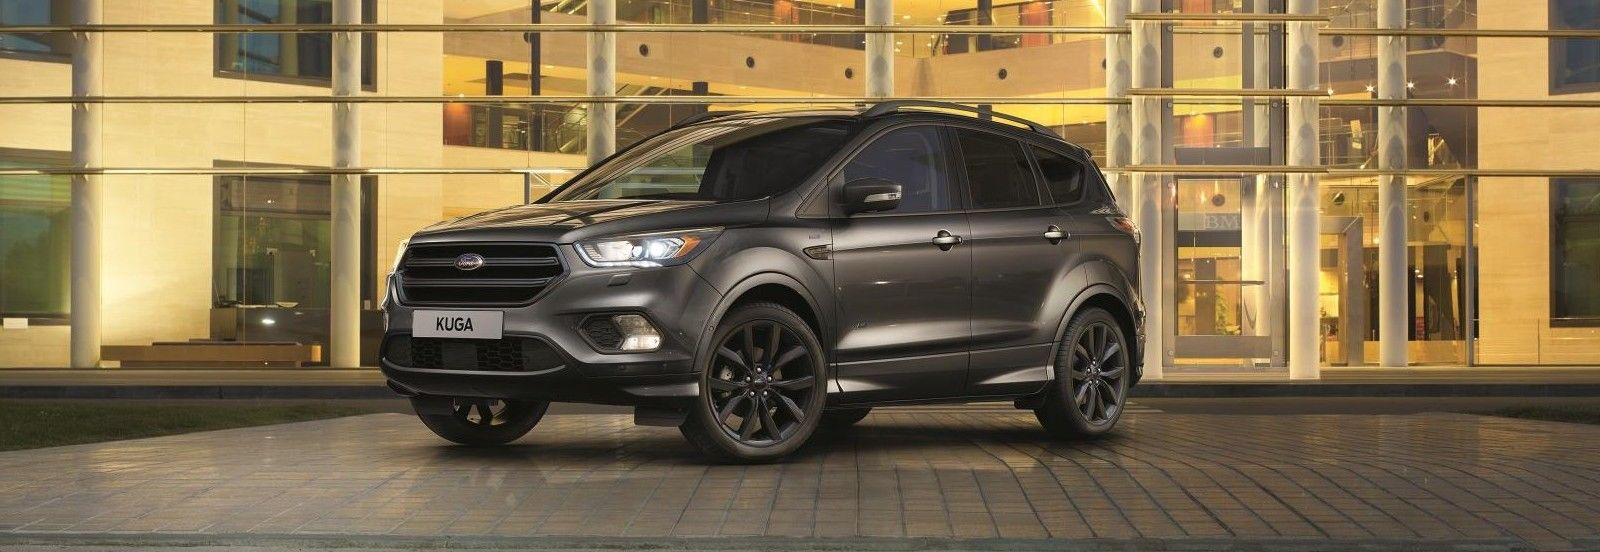 Image Result For Ford Kuga Vignale For Sale